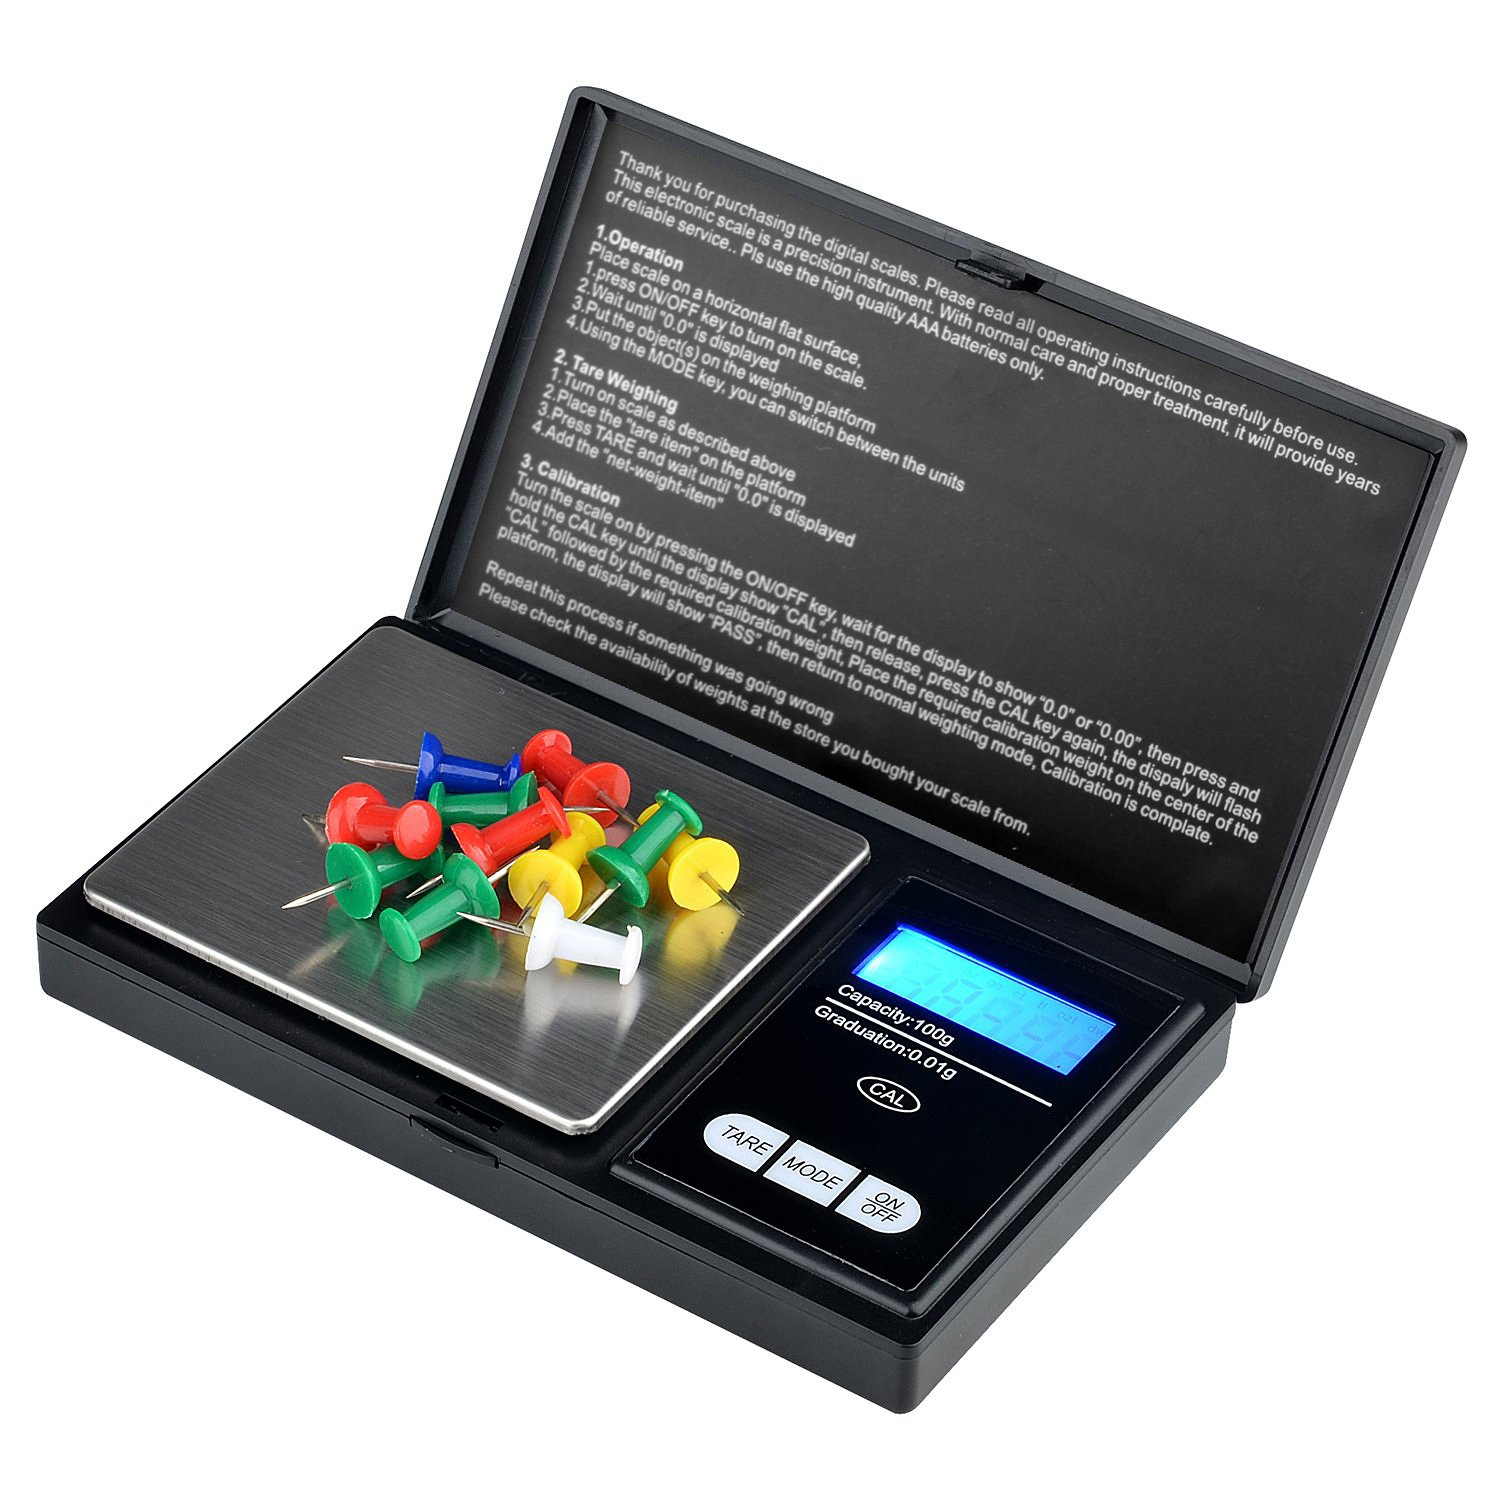 Insten Digital Jewelry Scale, Mini Pocket Size, Accurate Detail up to 0.01g – 100g, 6 Weighing Mode, Precision Weight for Gold, Gems, Coins, Jewelry, Calibration Weight